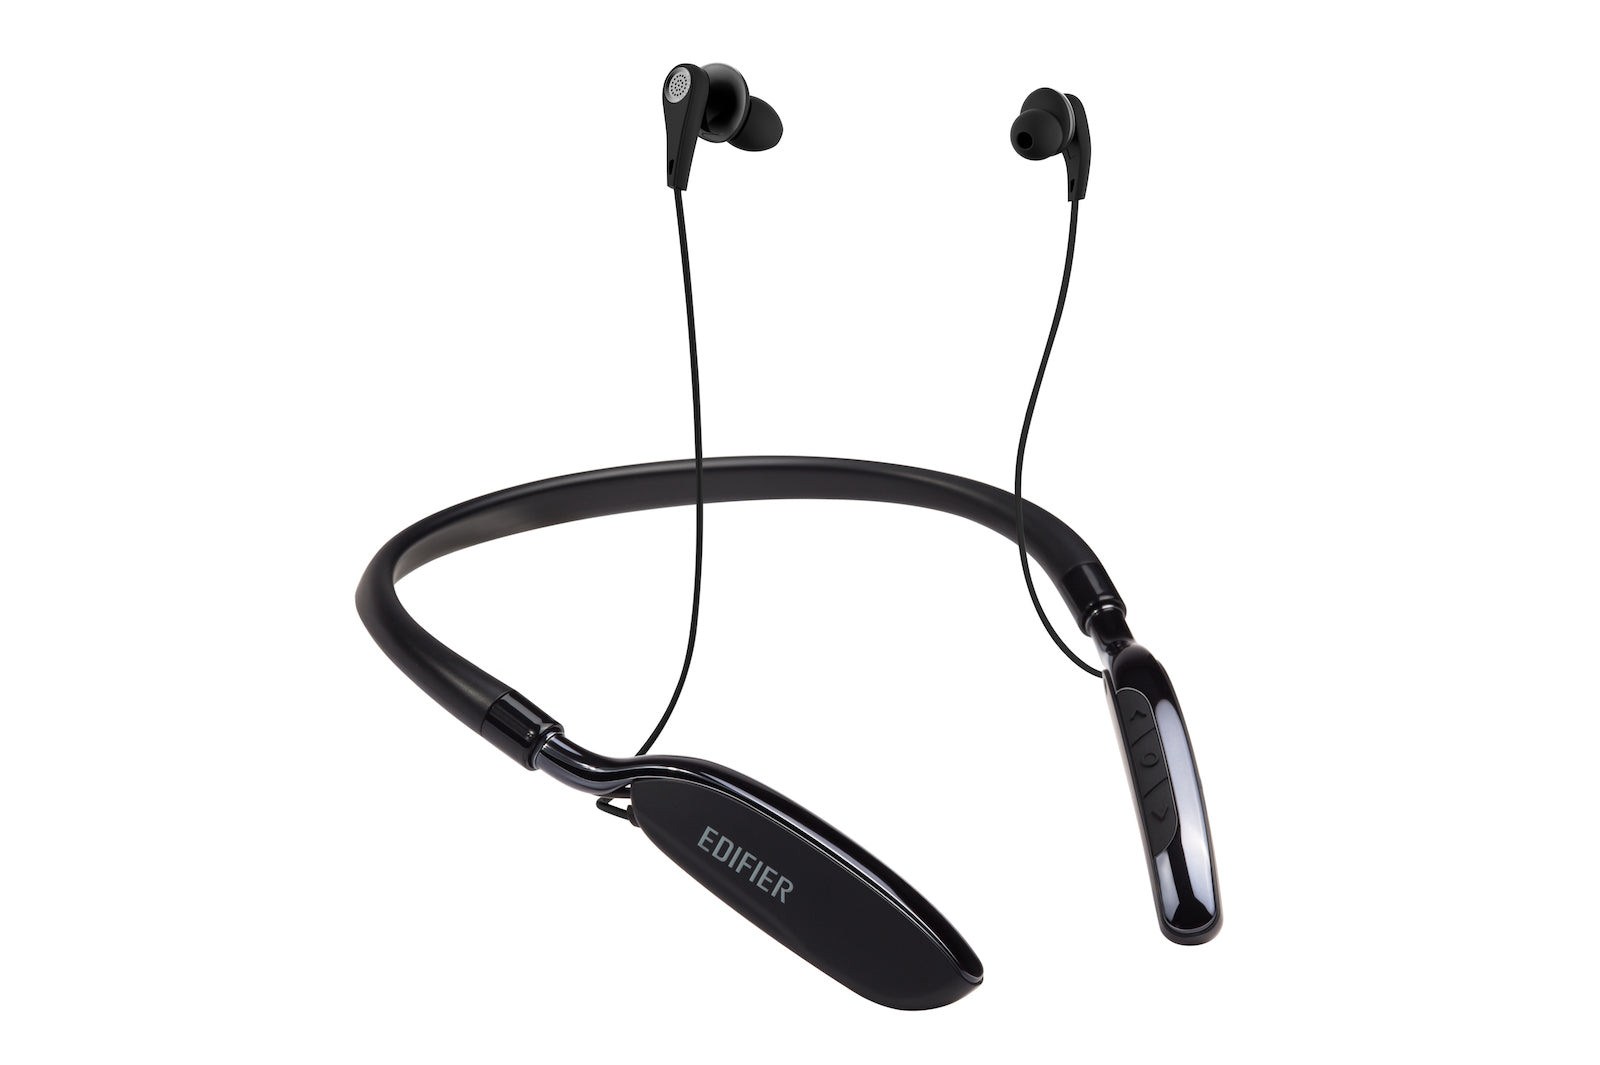 Edifier W360NB Active Noise Cancelling Bluetooth Headphones